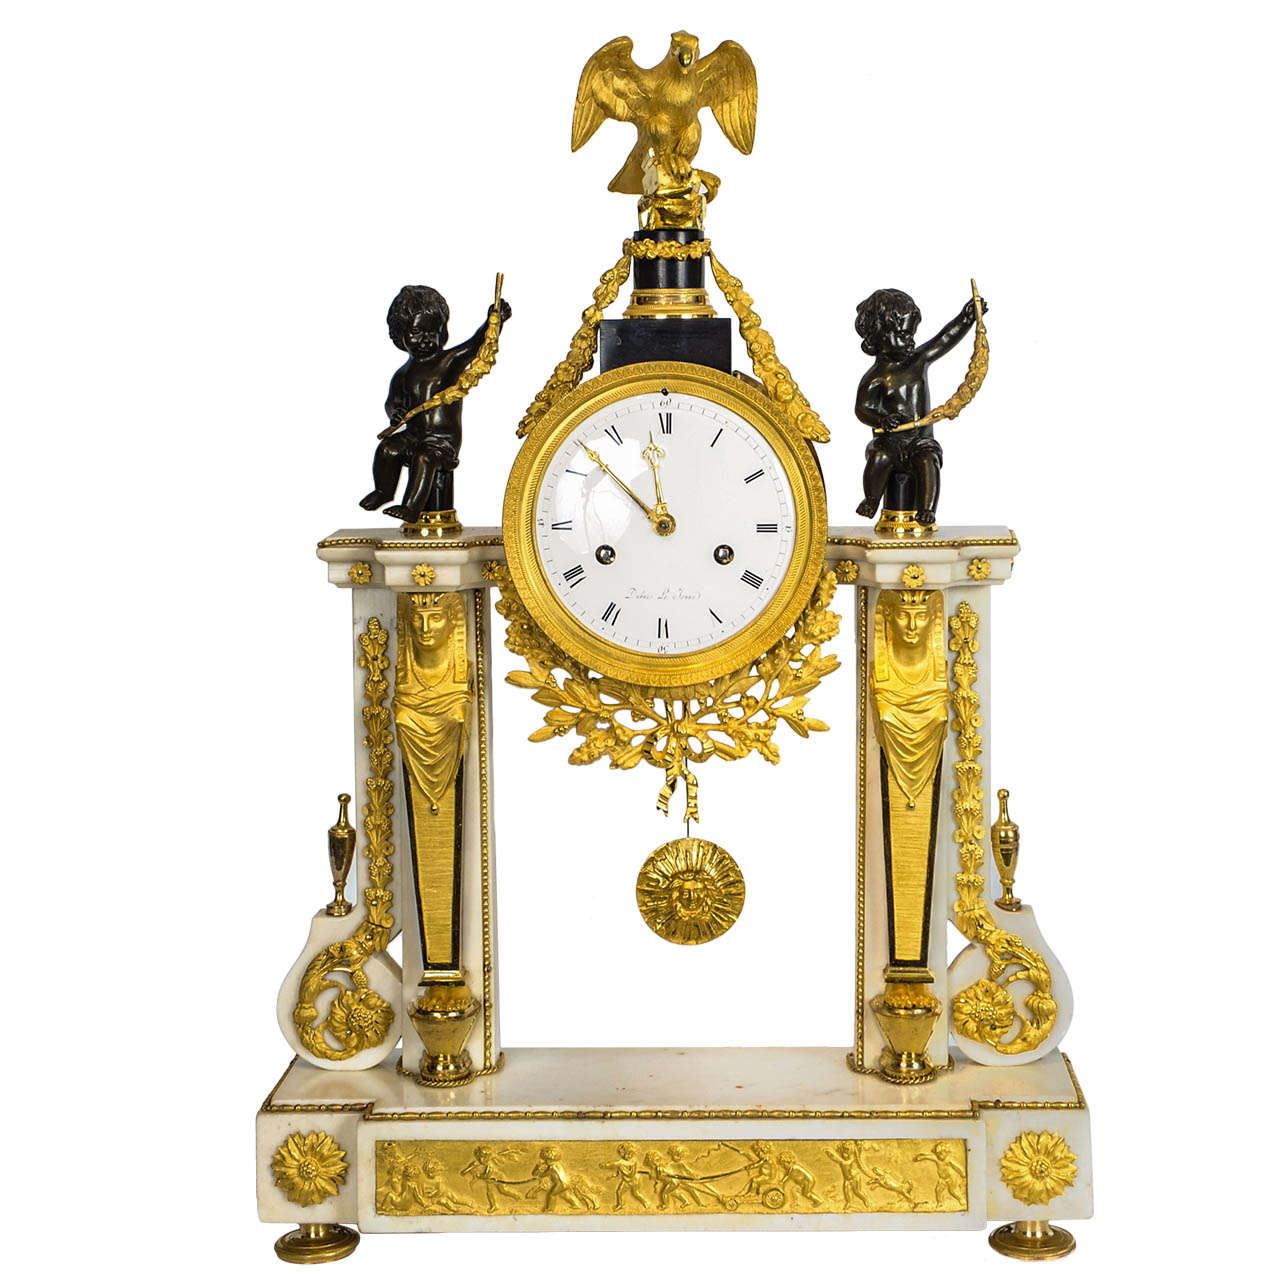 French Louis XVI Marble, Ormolu and Patinated Bronze Mantel Clock, circa 1780